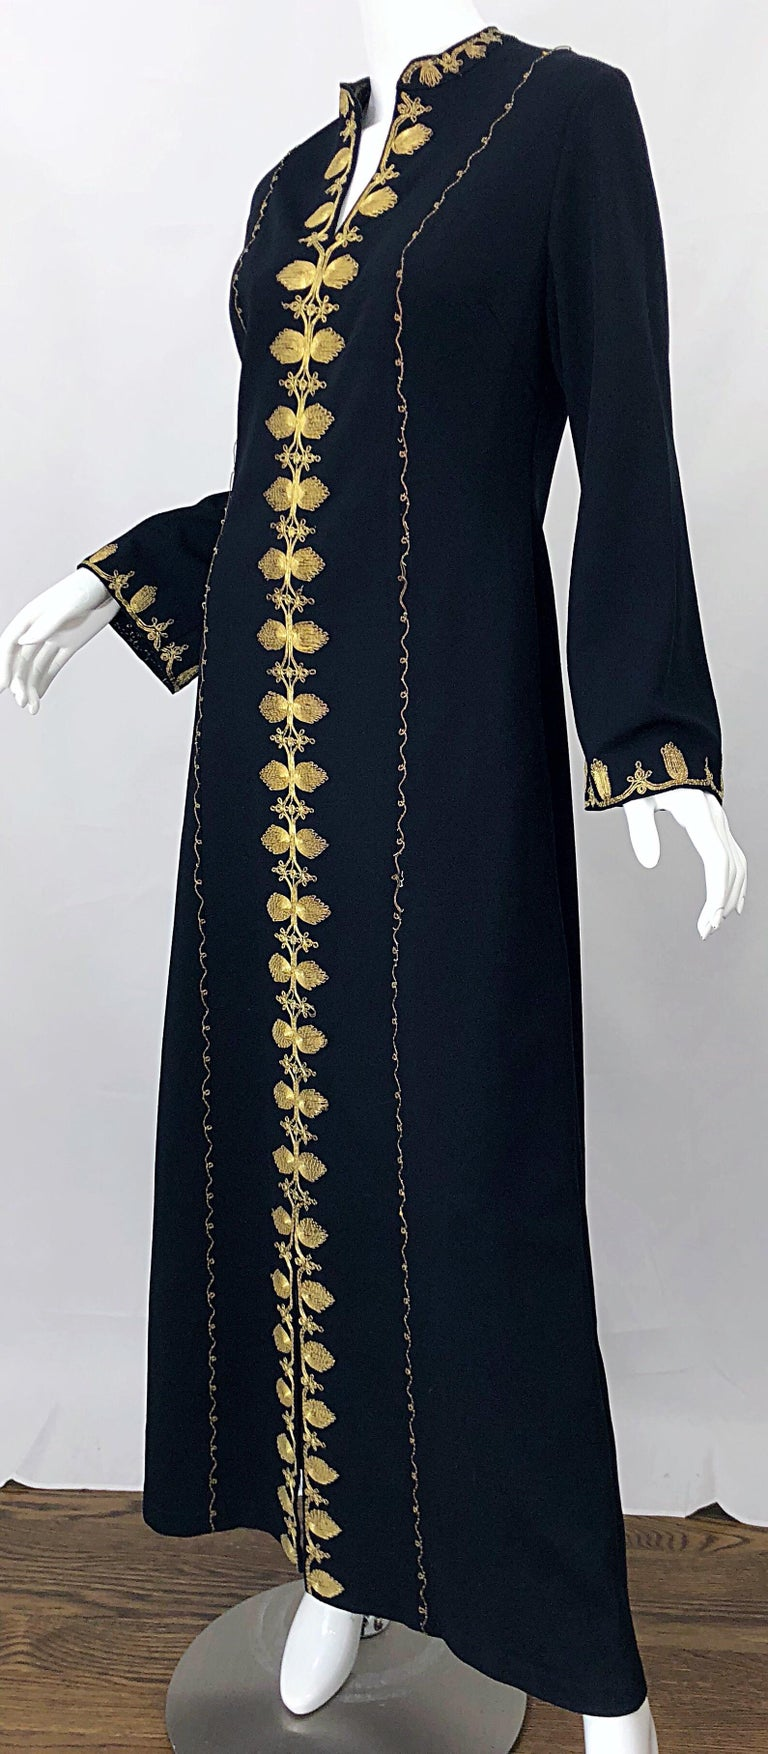 1970s Moroccan Black + Gold Metal Embroidered Vintage 70s Caftan Maxi Dress For Sale 10